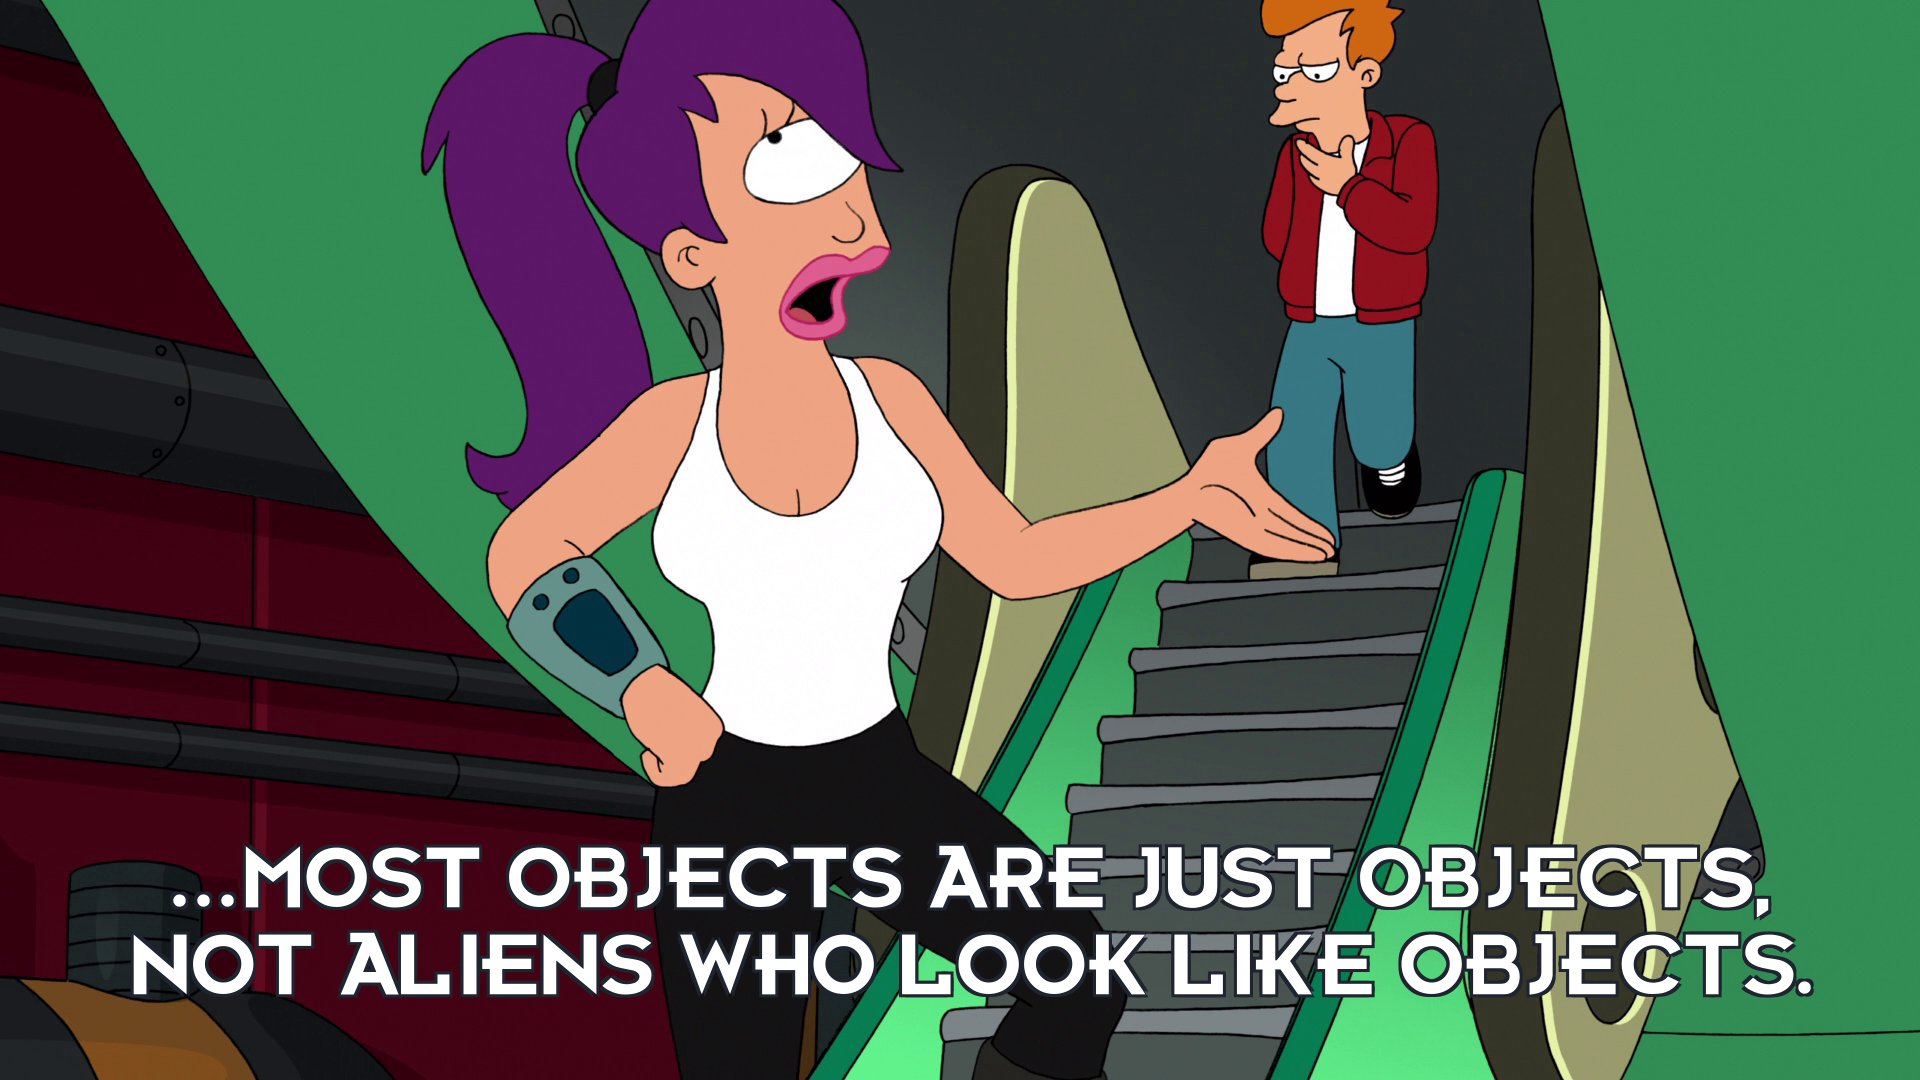 Turanga Leela: ...most objects are just objects, not aliens who look like objects.